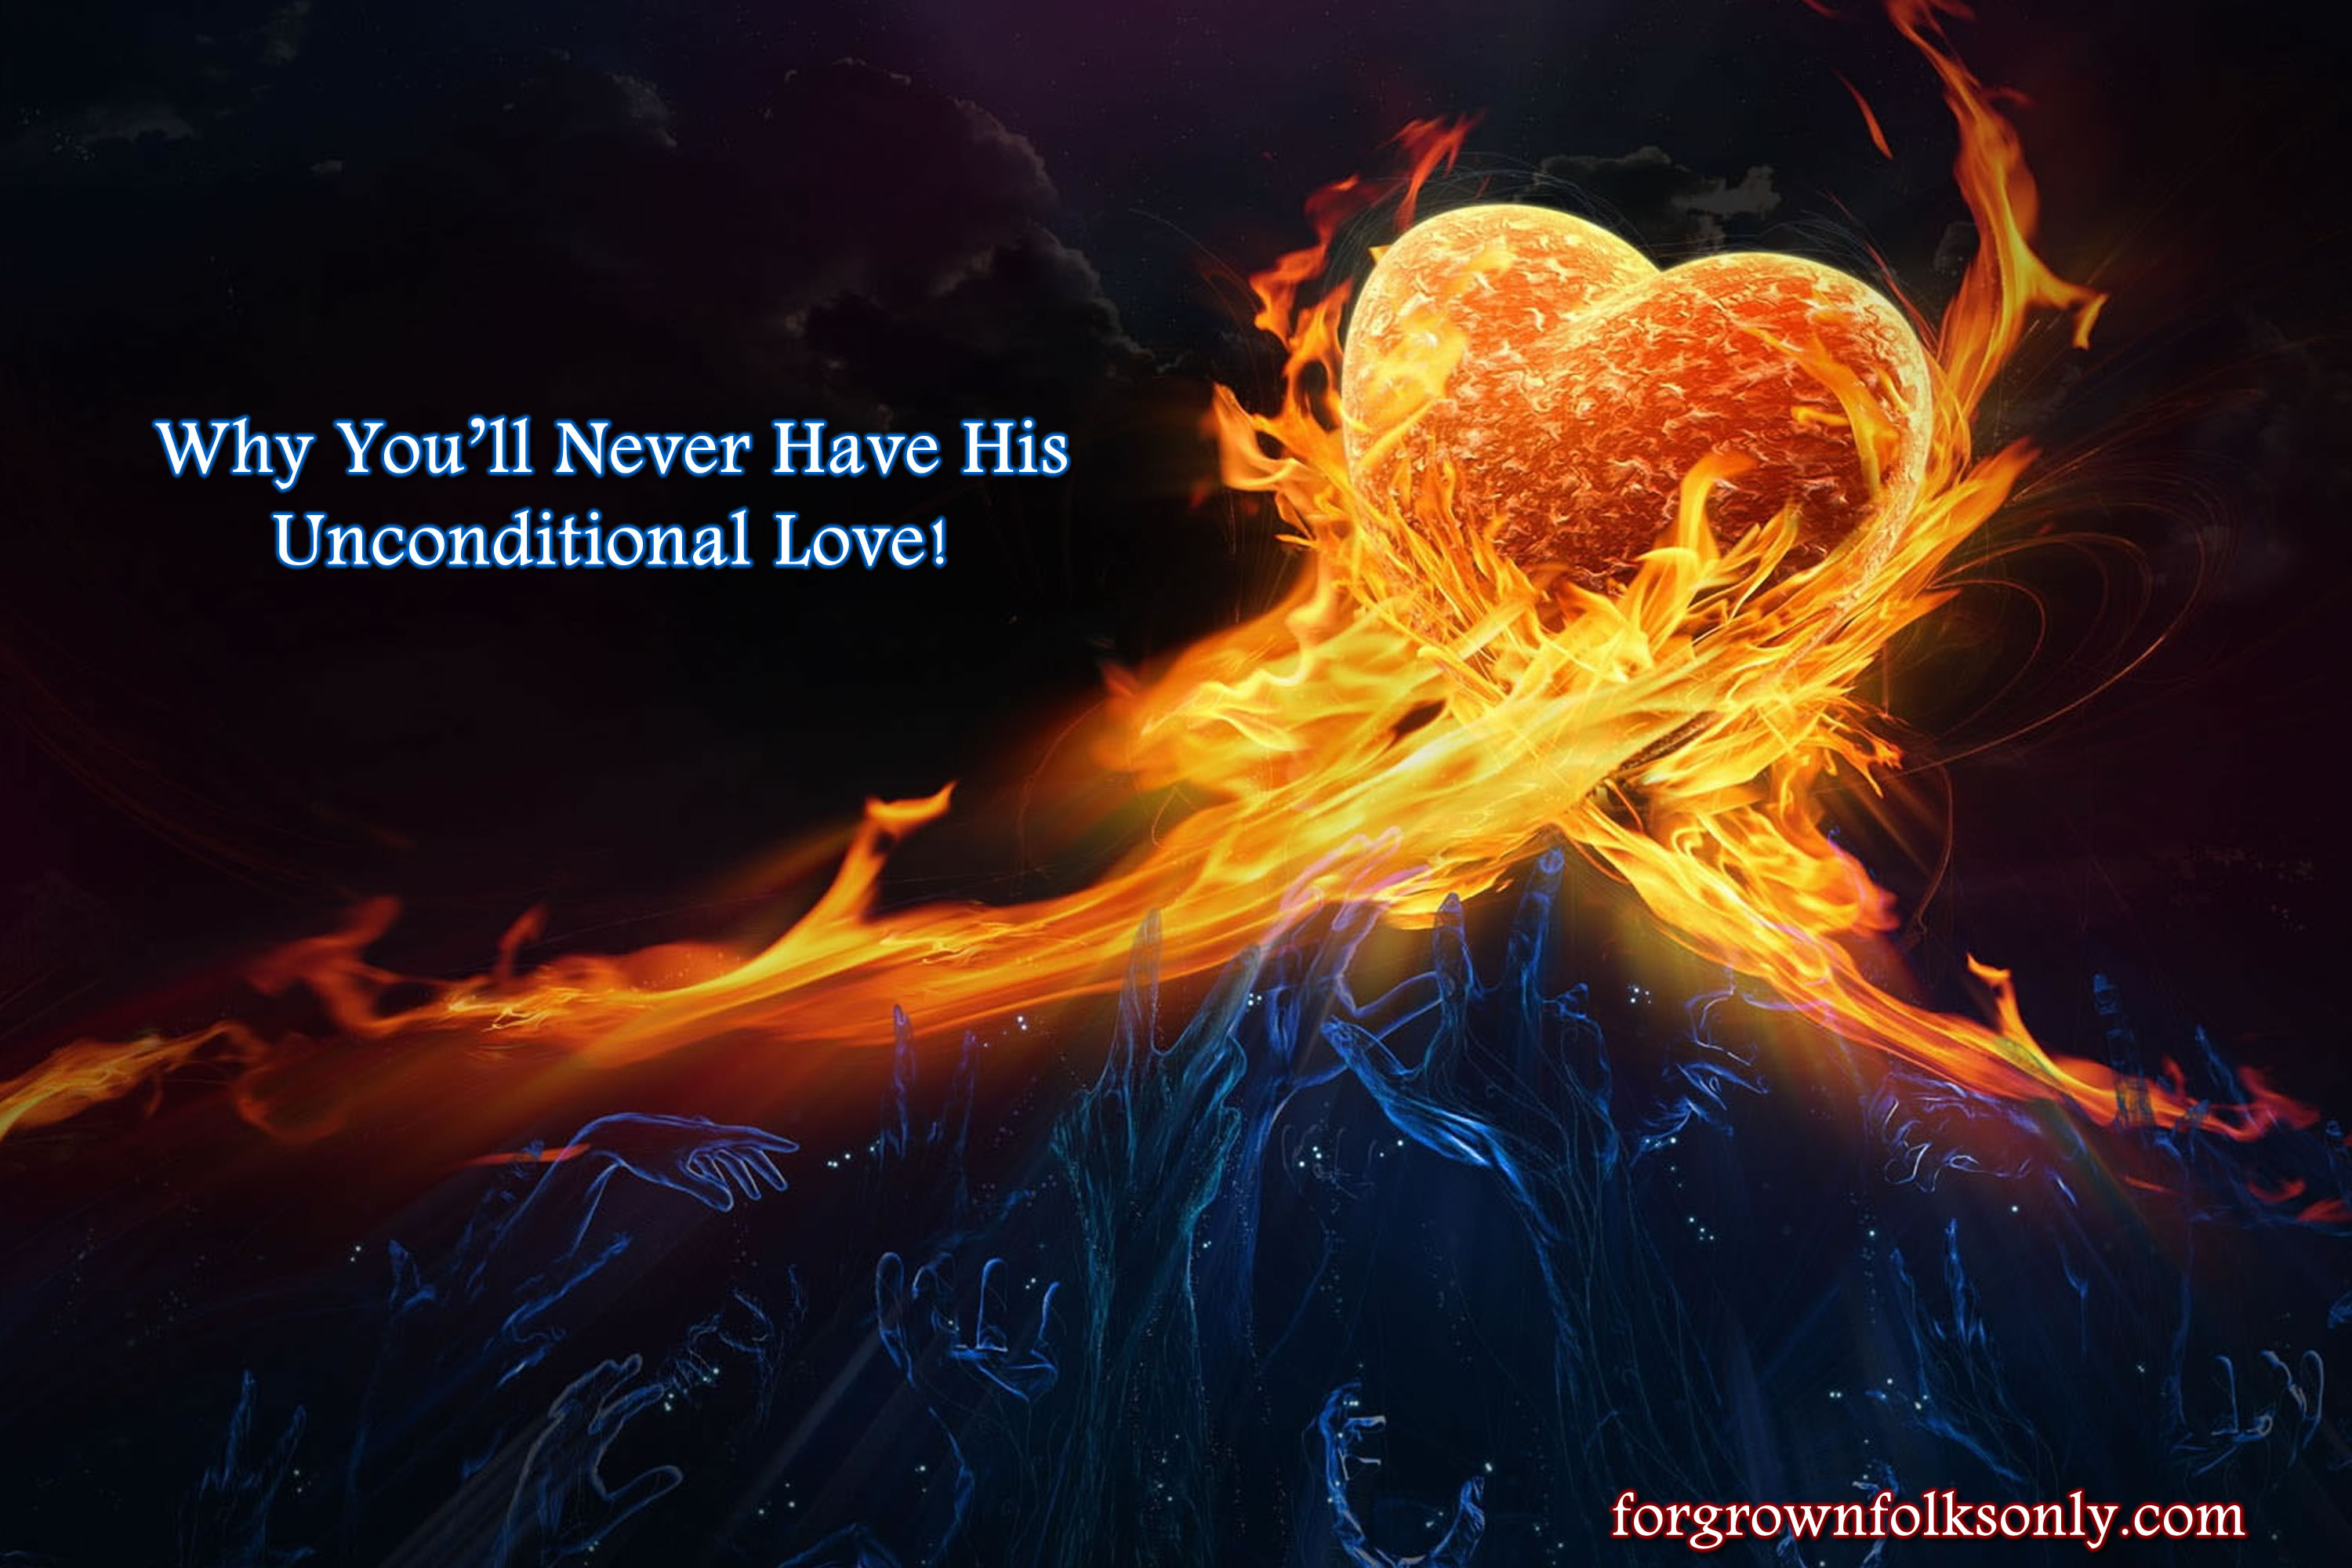 : Want His Unconditional Love?